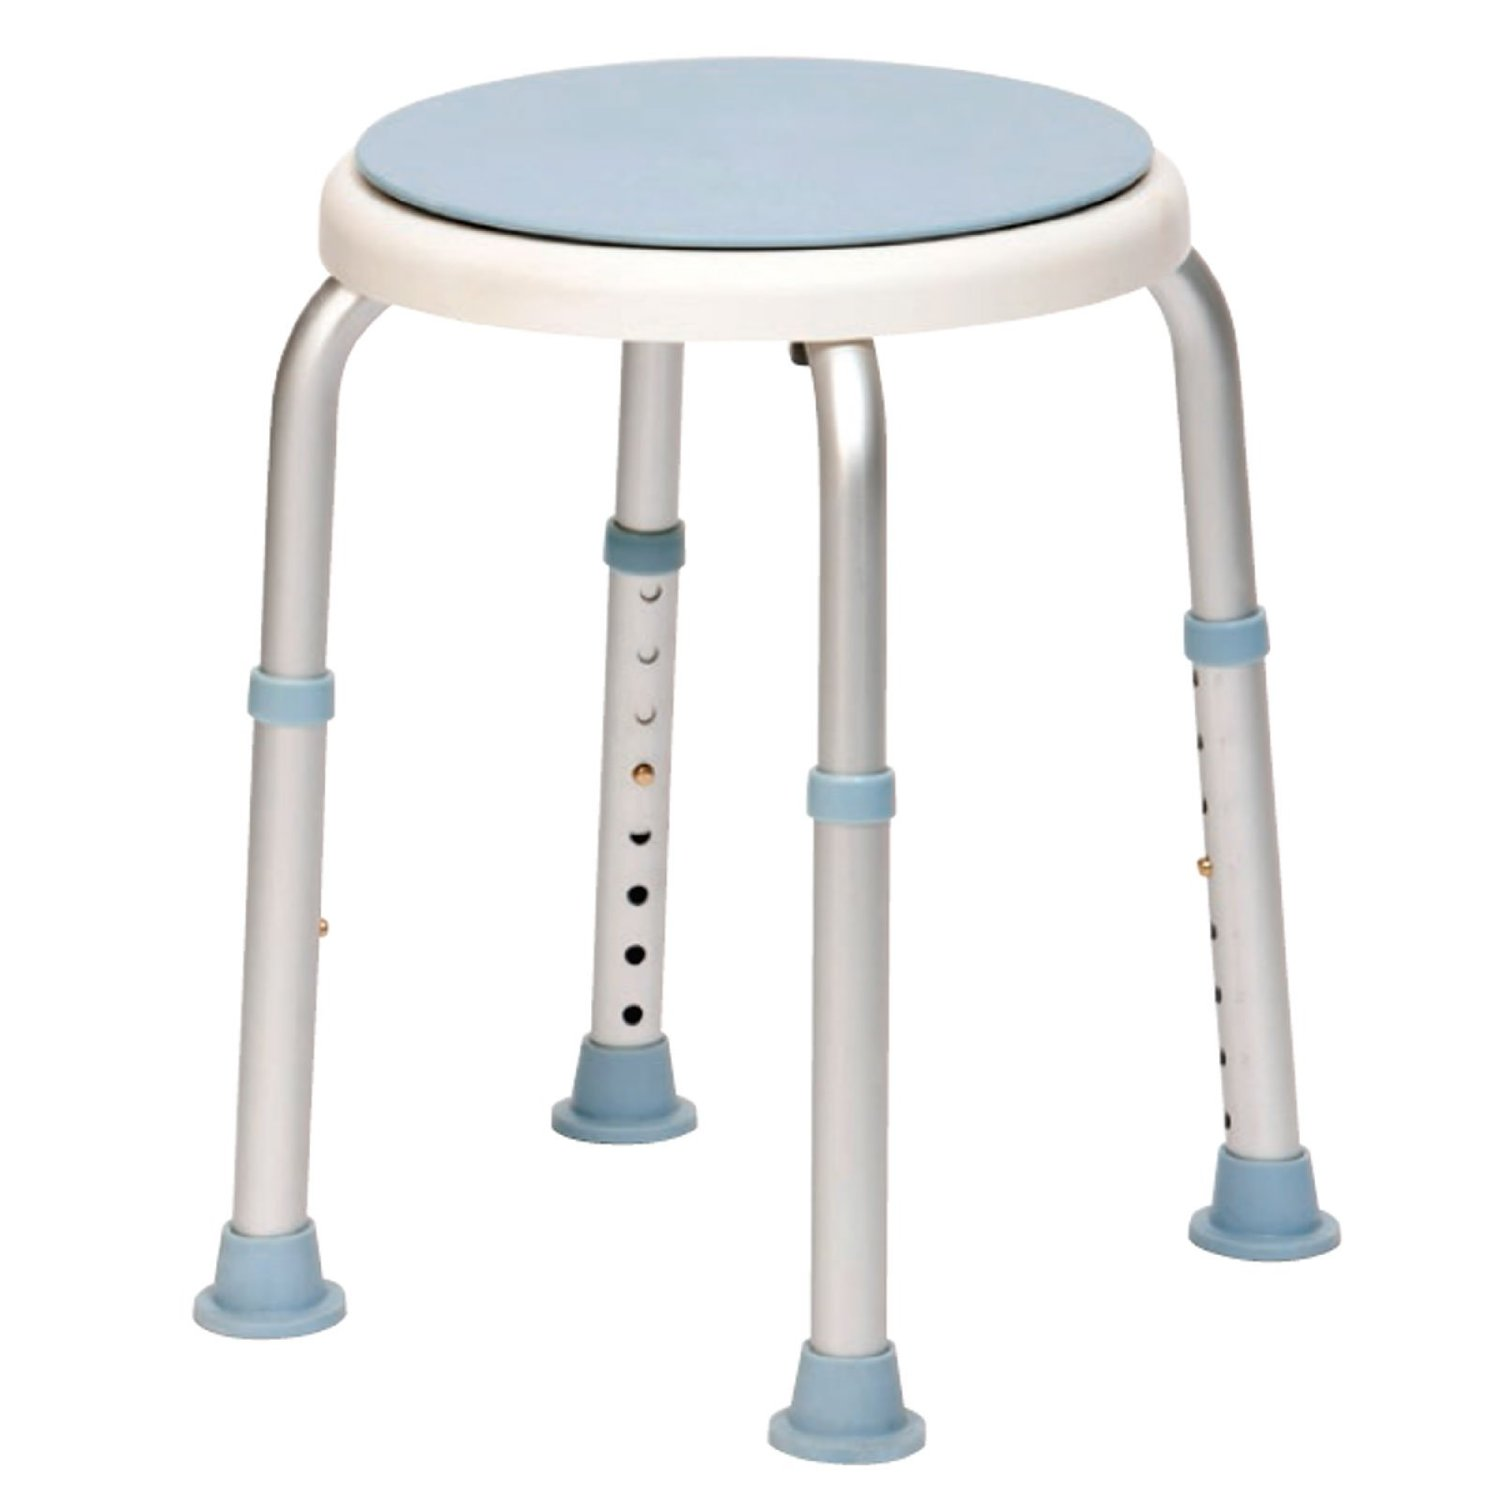 Shower/Bath Stool with Rotating Seat